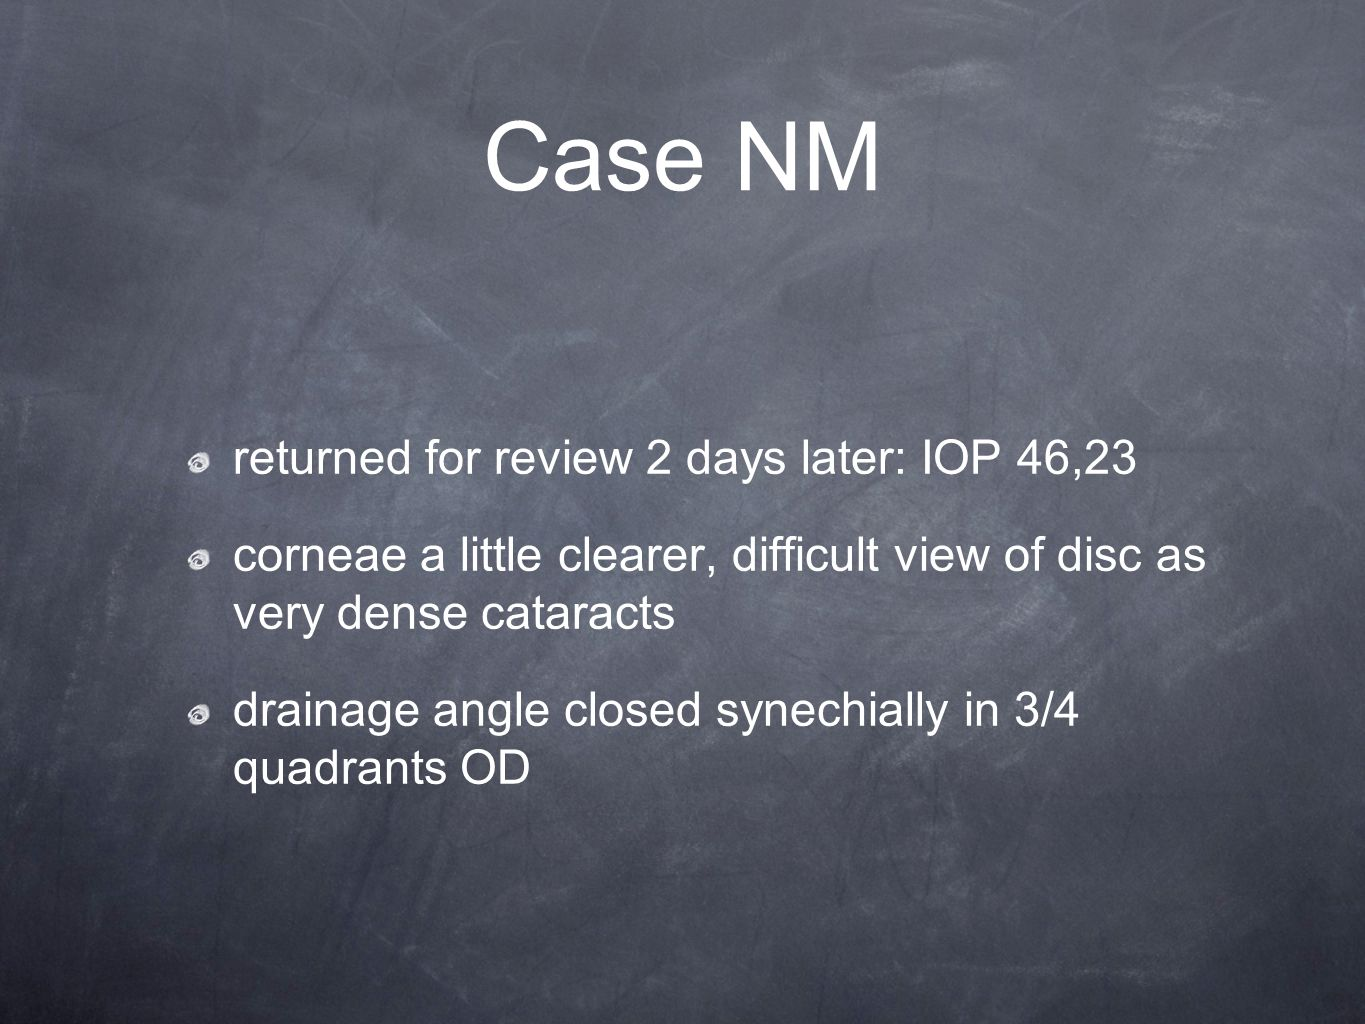 Case NM returned for review 2 days later: IOP 46,23 corneae a little clearer, difficult view of disc as very dense cataracts drainage angle closed synechially in 3/4 quadrants OD